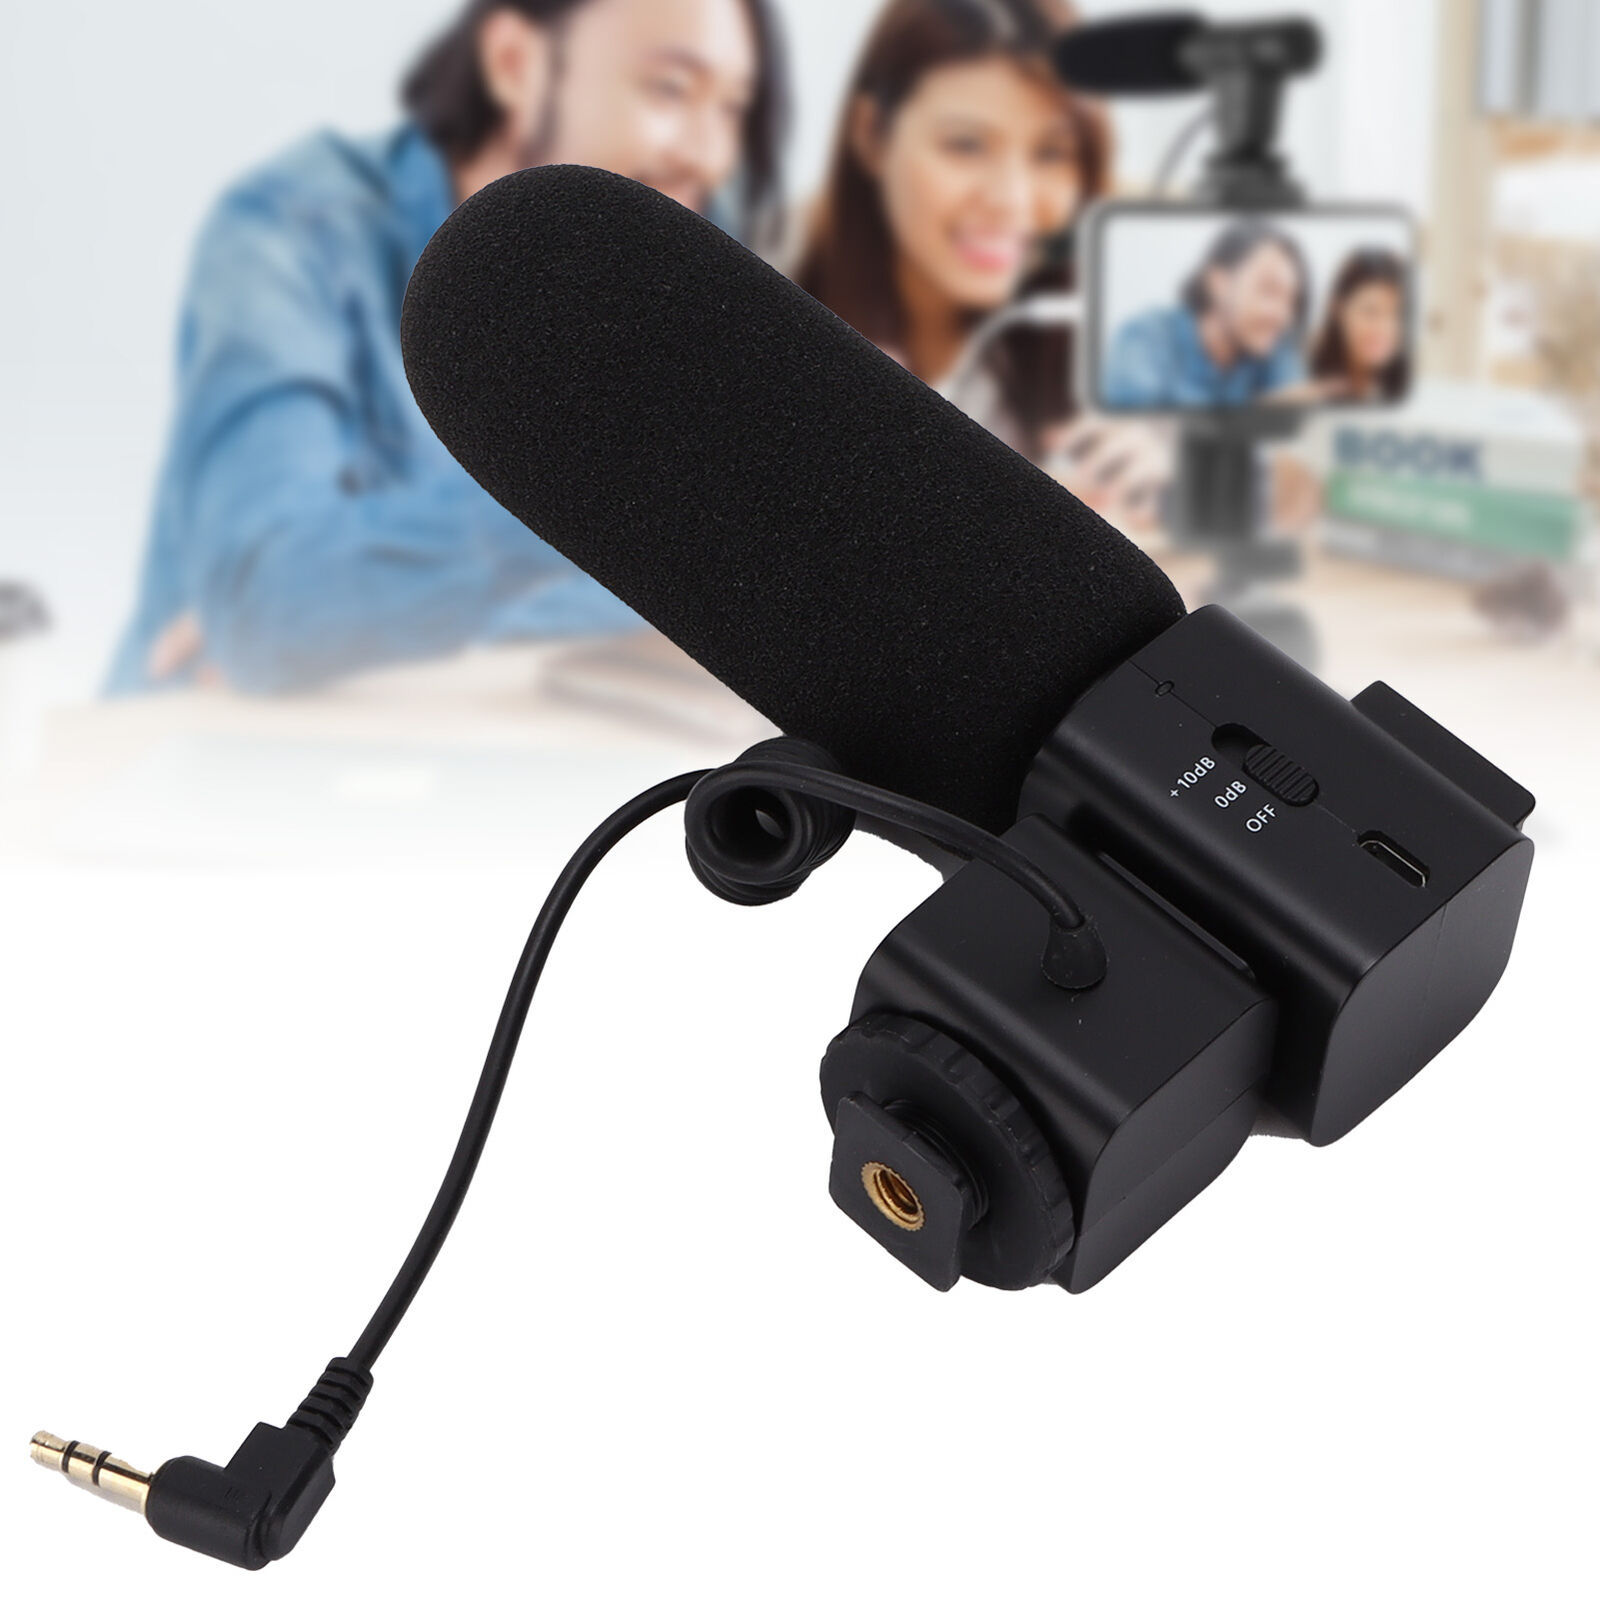 Professional Supercardioid Shotgun Microphone with Cold Shoe Mount for Interview